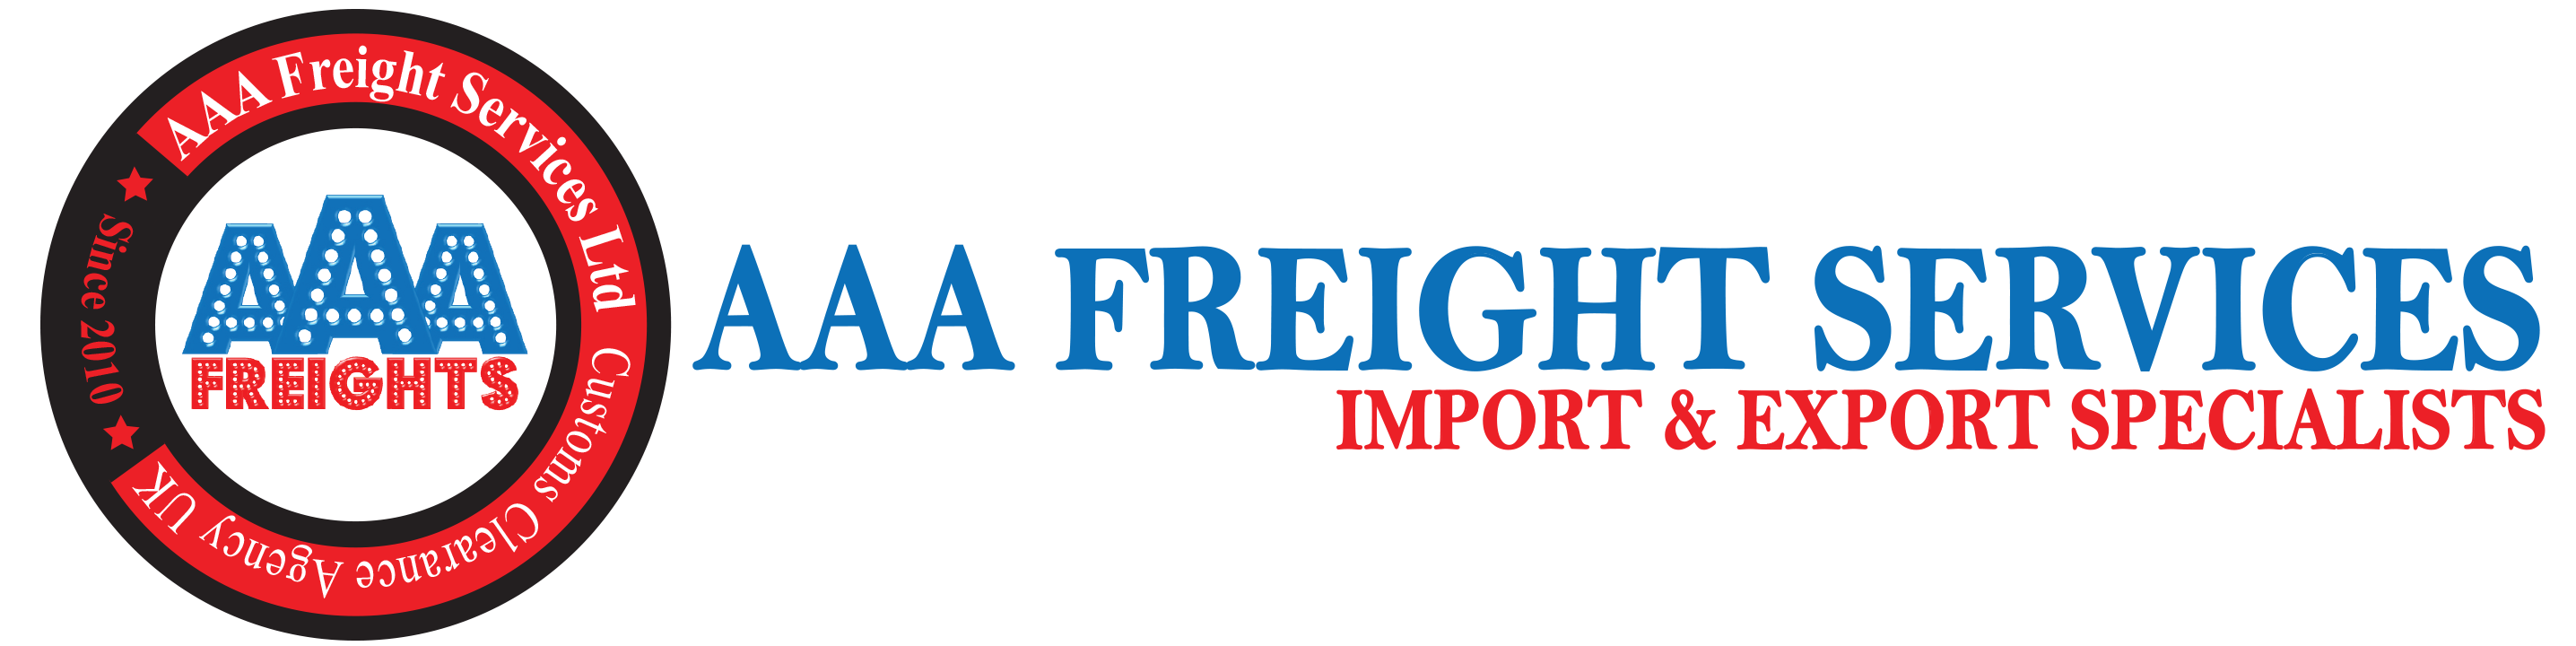 Customs Clearance Agents uk & Freight forwarding Cheapest 24